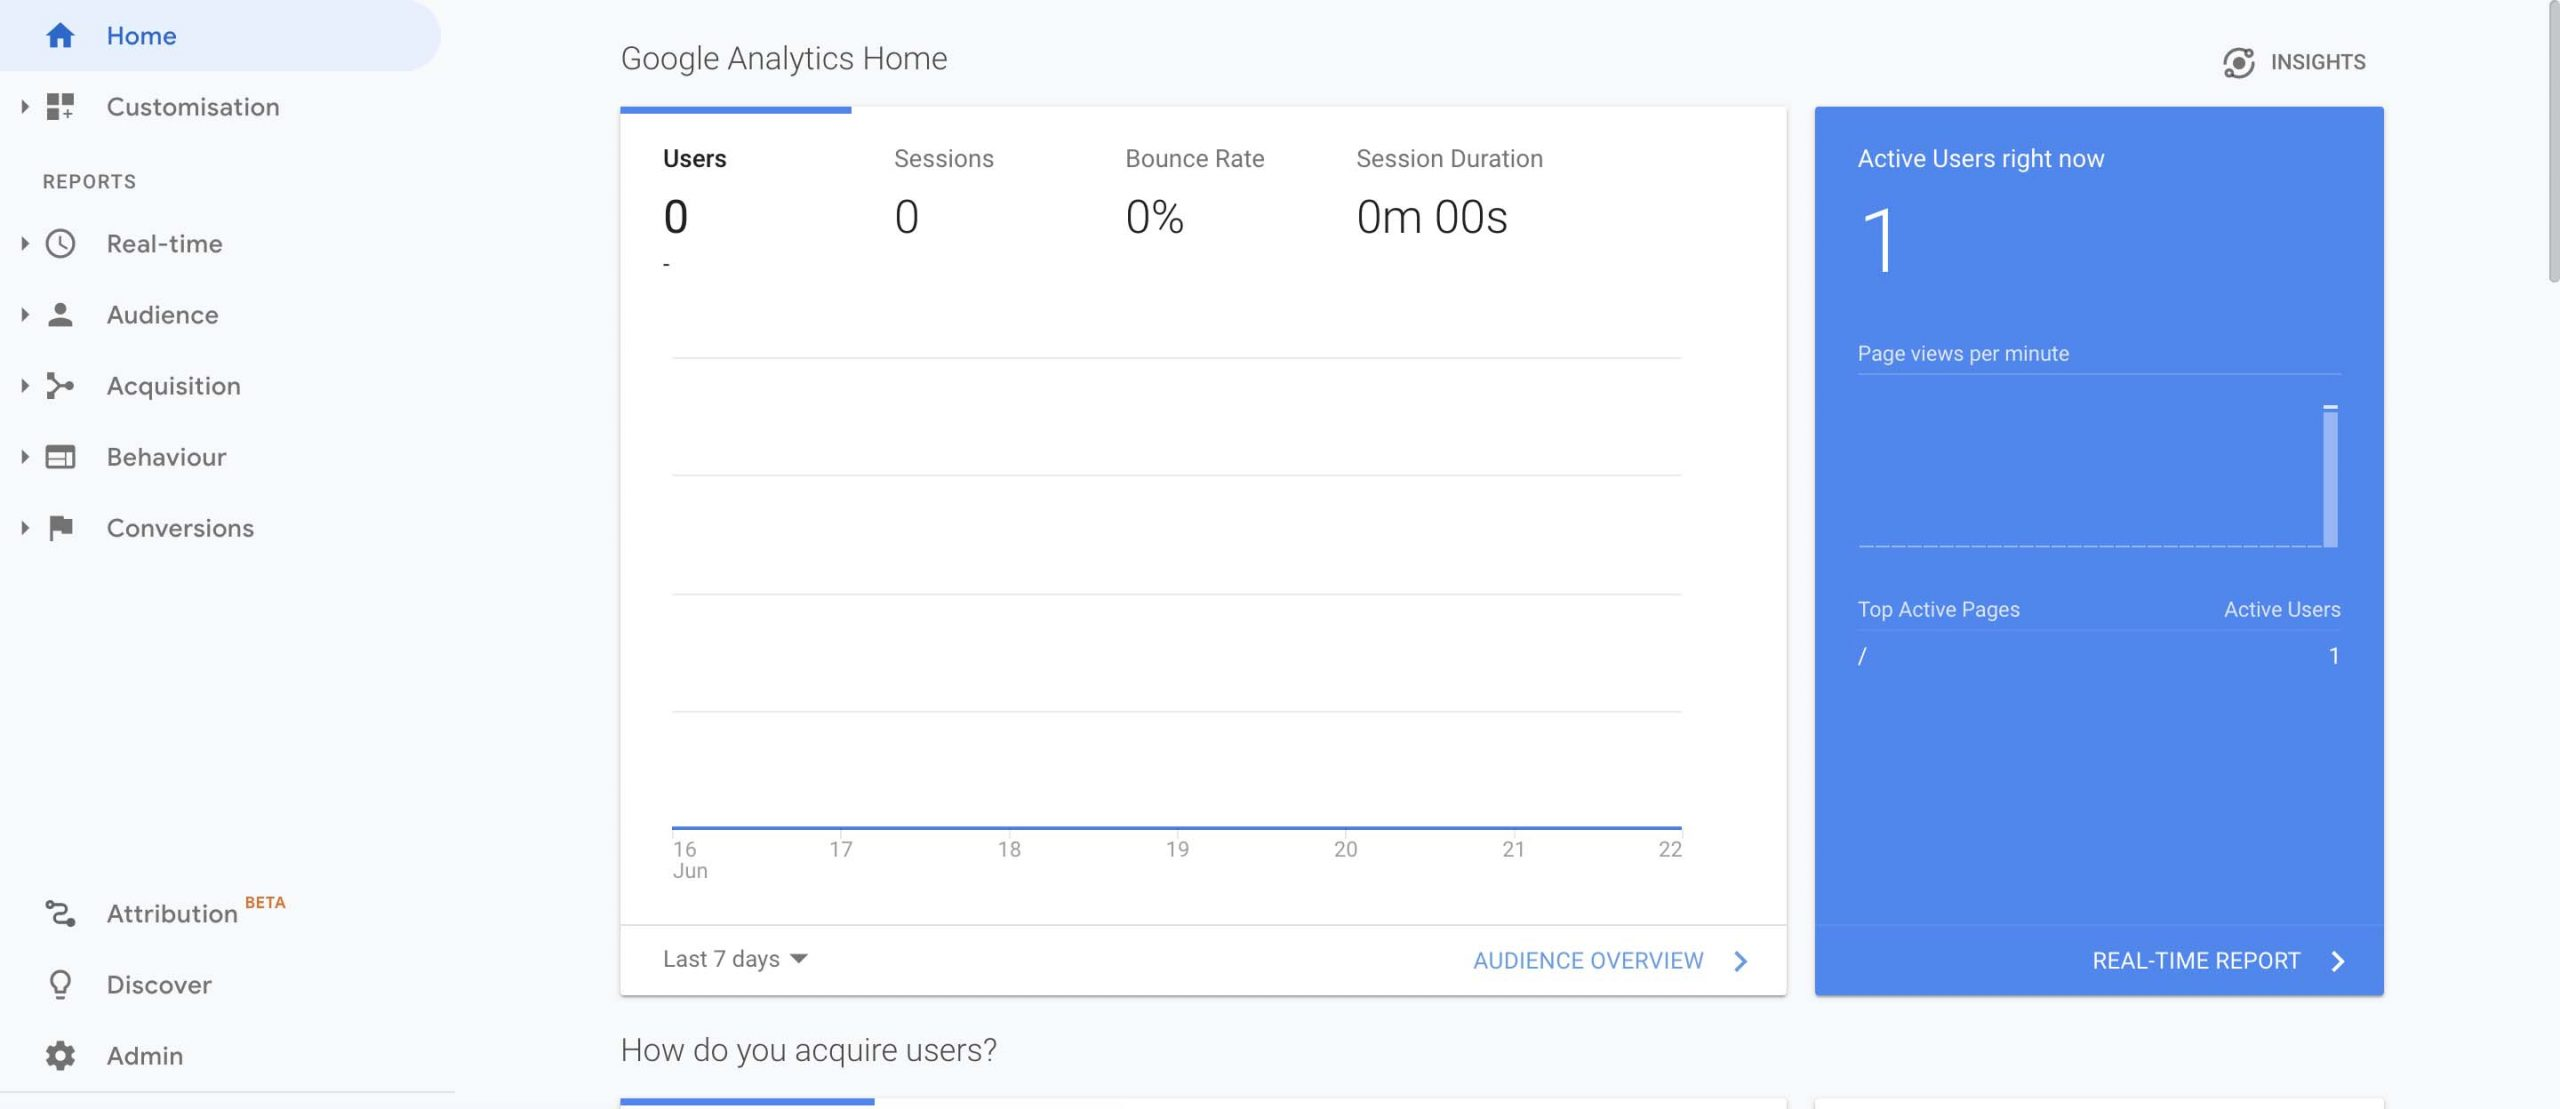 How to Set up Google Analytics: The Complete Guide (with pictures) 39